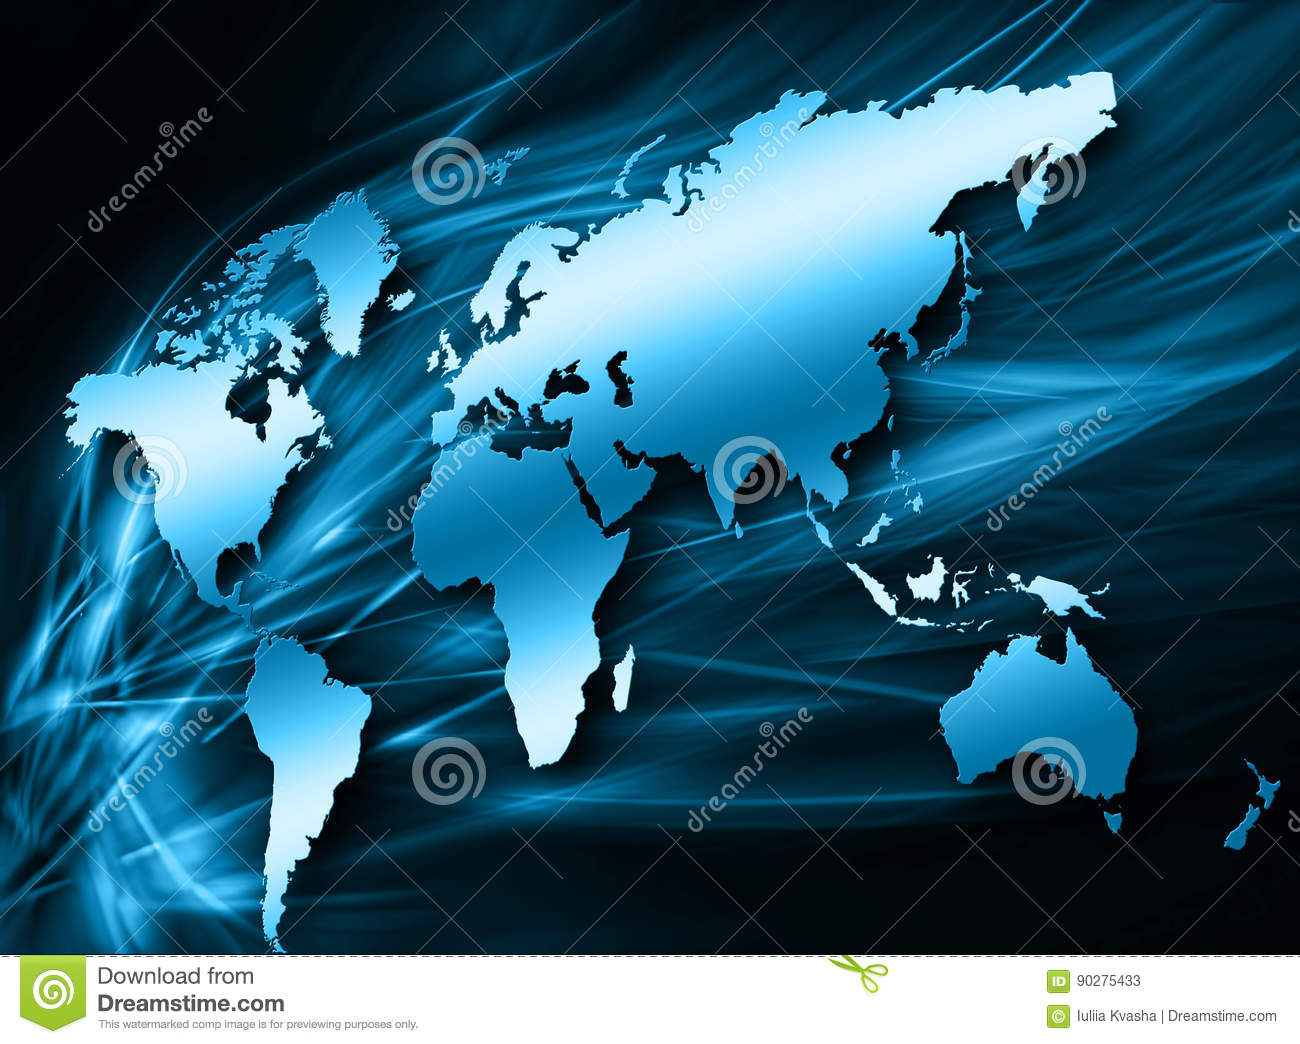 World map on a technological background glowing lines symbols of download comp gumiabroncs Choice Image